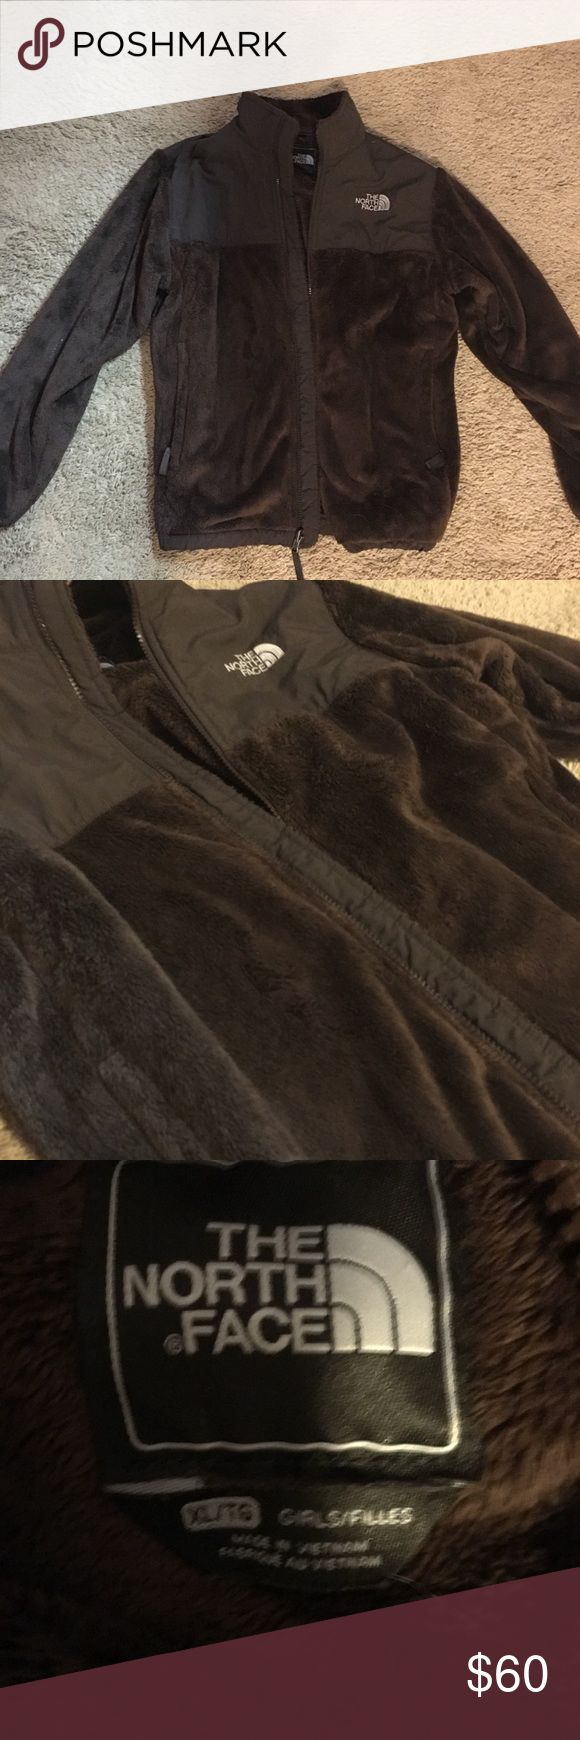 """North Face Zip Up Jacket Brown fleece, like new. Only worn a few times! Super soft and warm!  It's a child XL but will fit an petite adult! I'm 5'4"""", 120 lbs and it fits perfectly! North Face Jackets & Coats"""